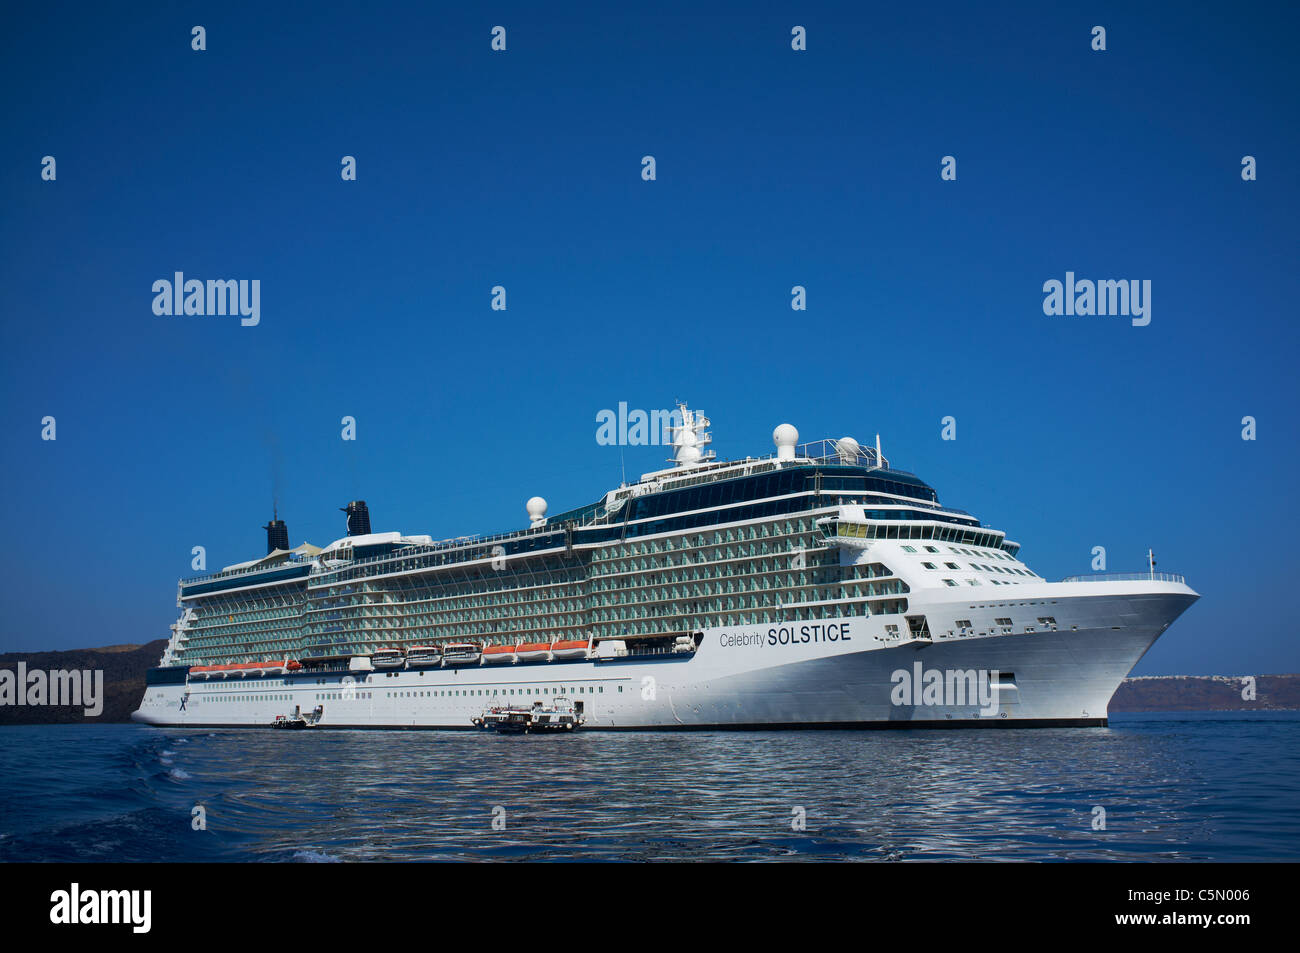 Celebrity Solstice anchored off the Greek island of Santorini built in 2009 built in Meyer Werft in Germany - Stock Image